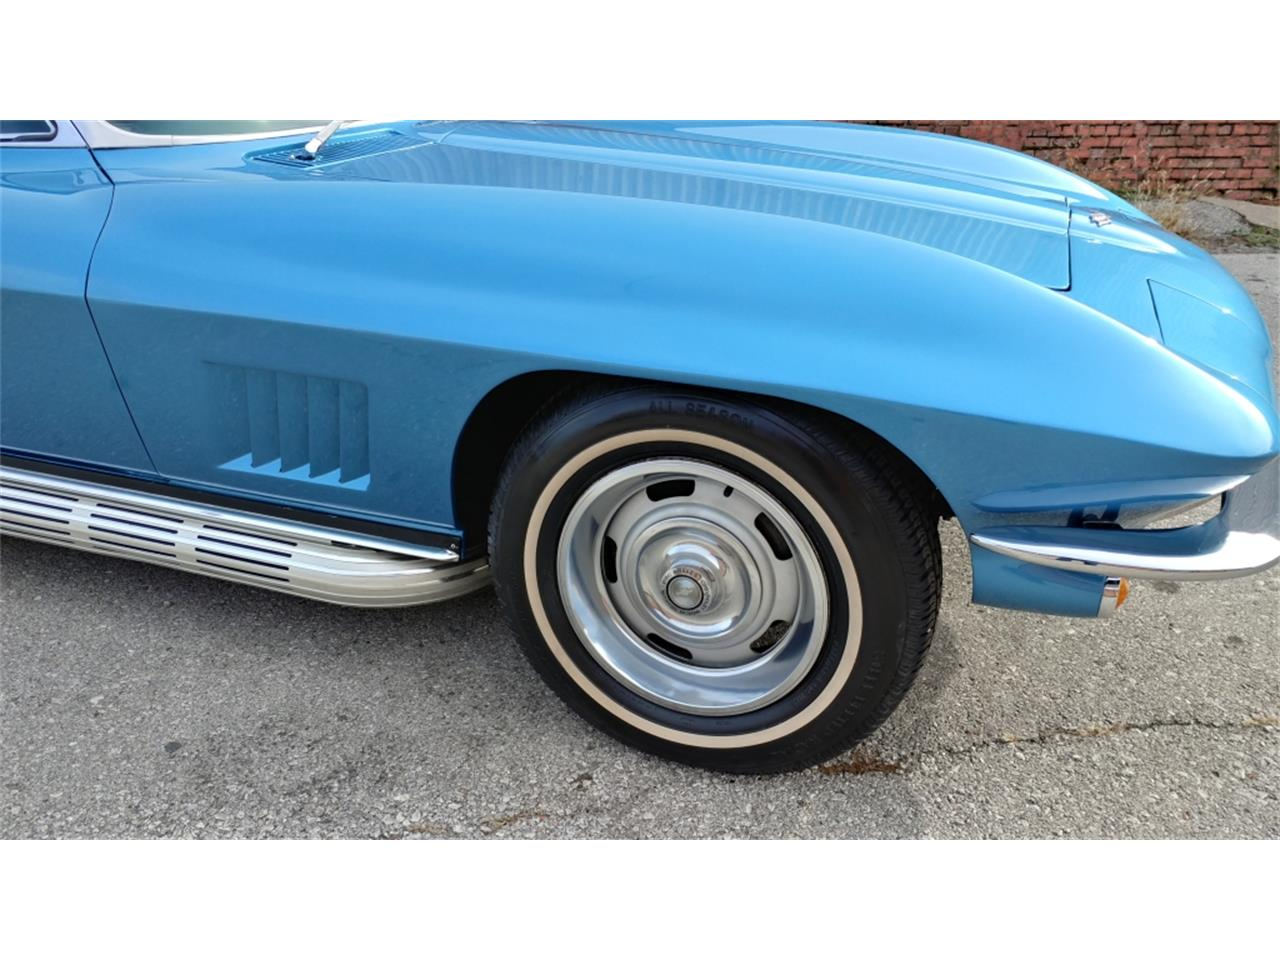 Large Picture of Classic '67 Corvette located in N. Kansas City Missouri - $69,500.00 Offered by Vintage Vettes, LLC - MO2L